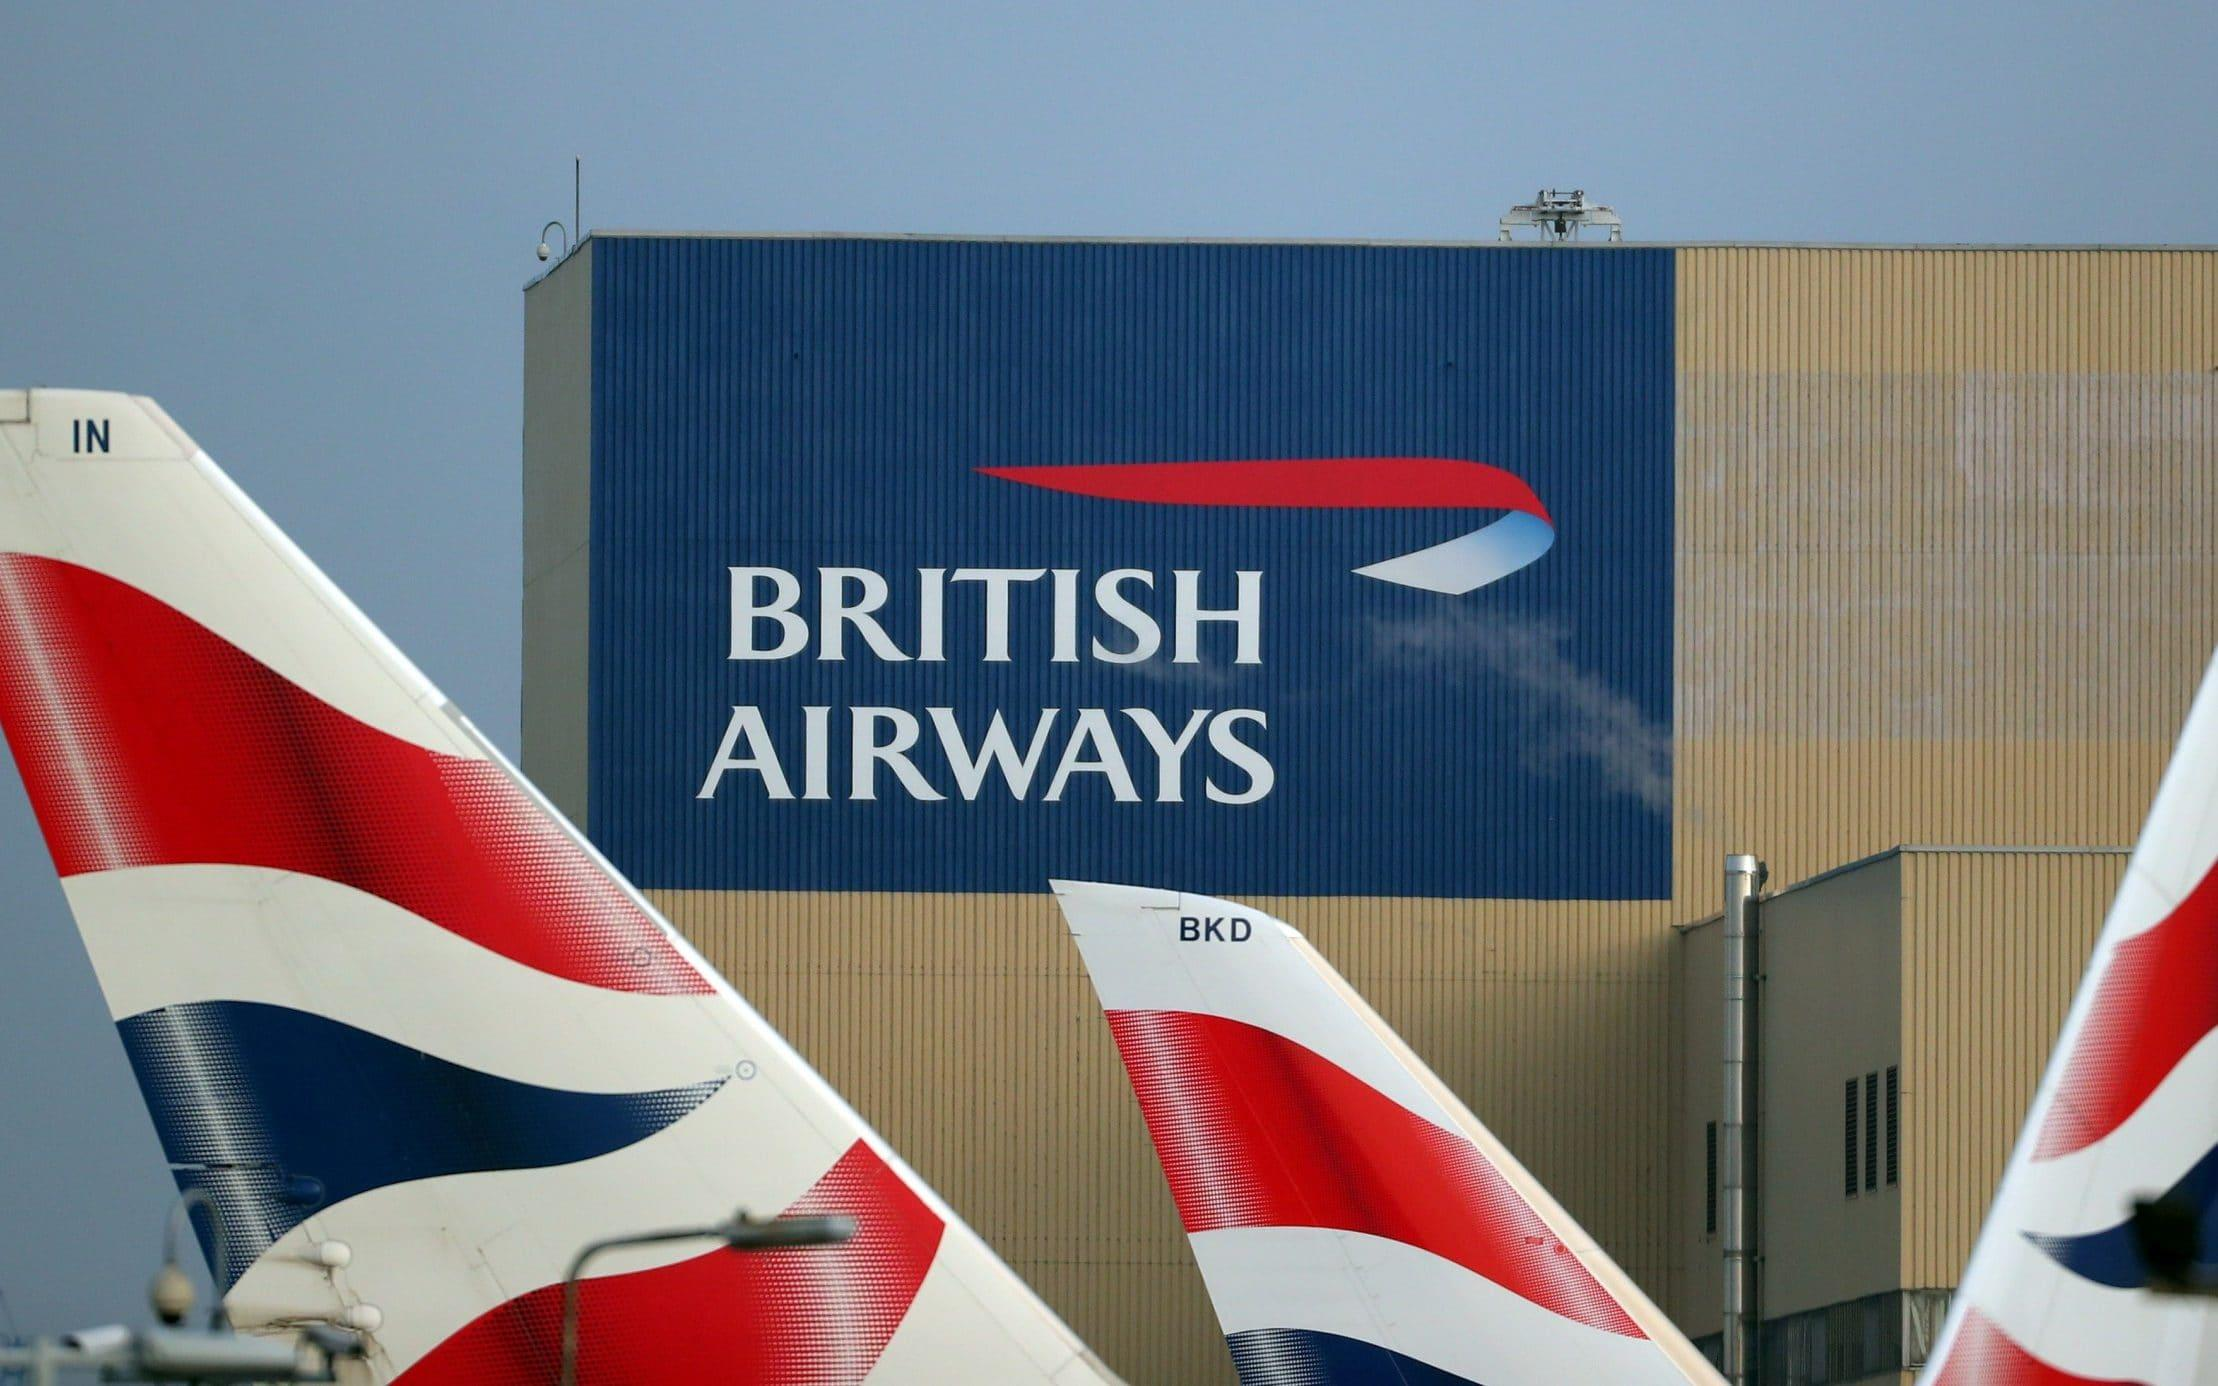 British Airways tells passengers not to turn up at airports, as airline's biggest ever strike begins